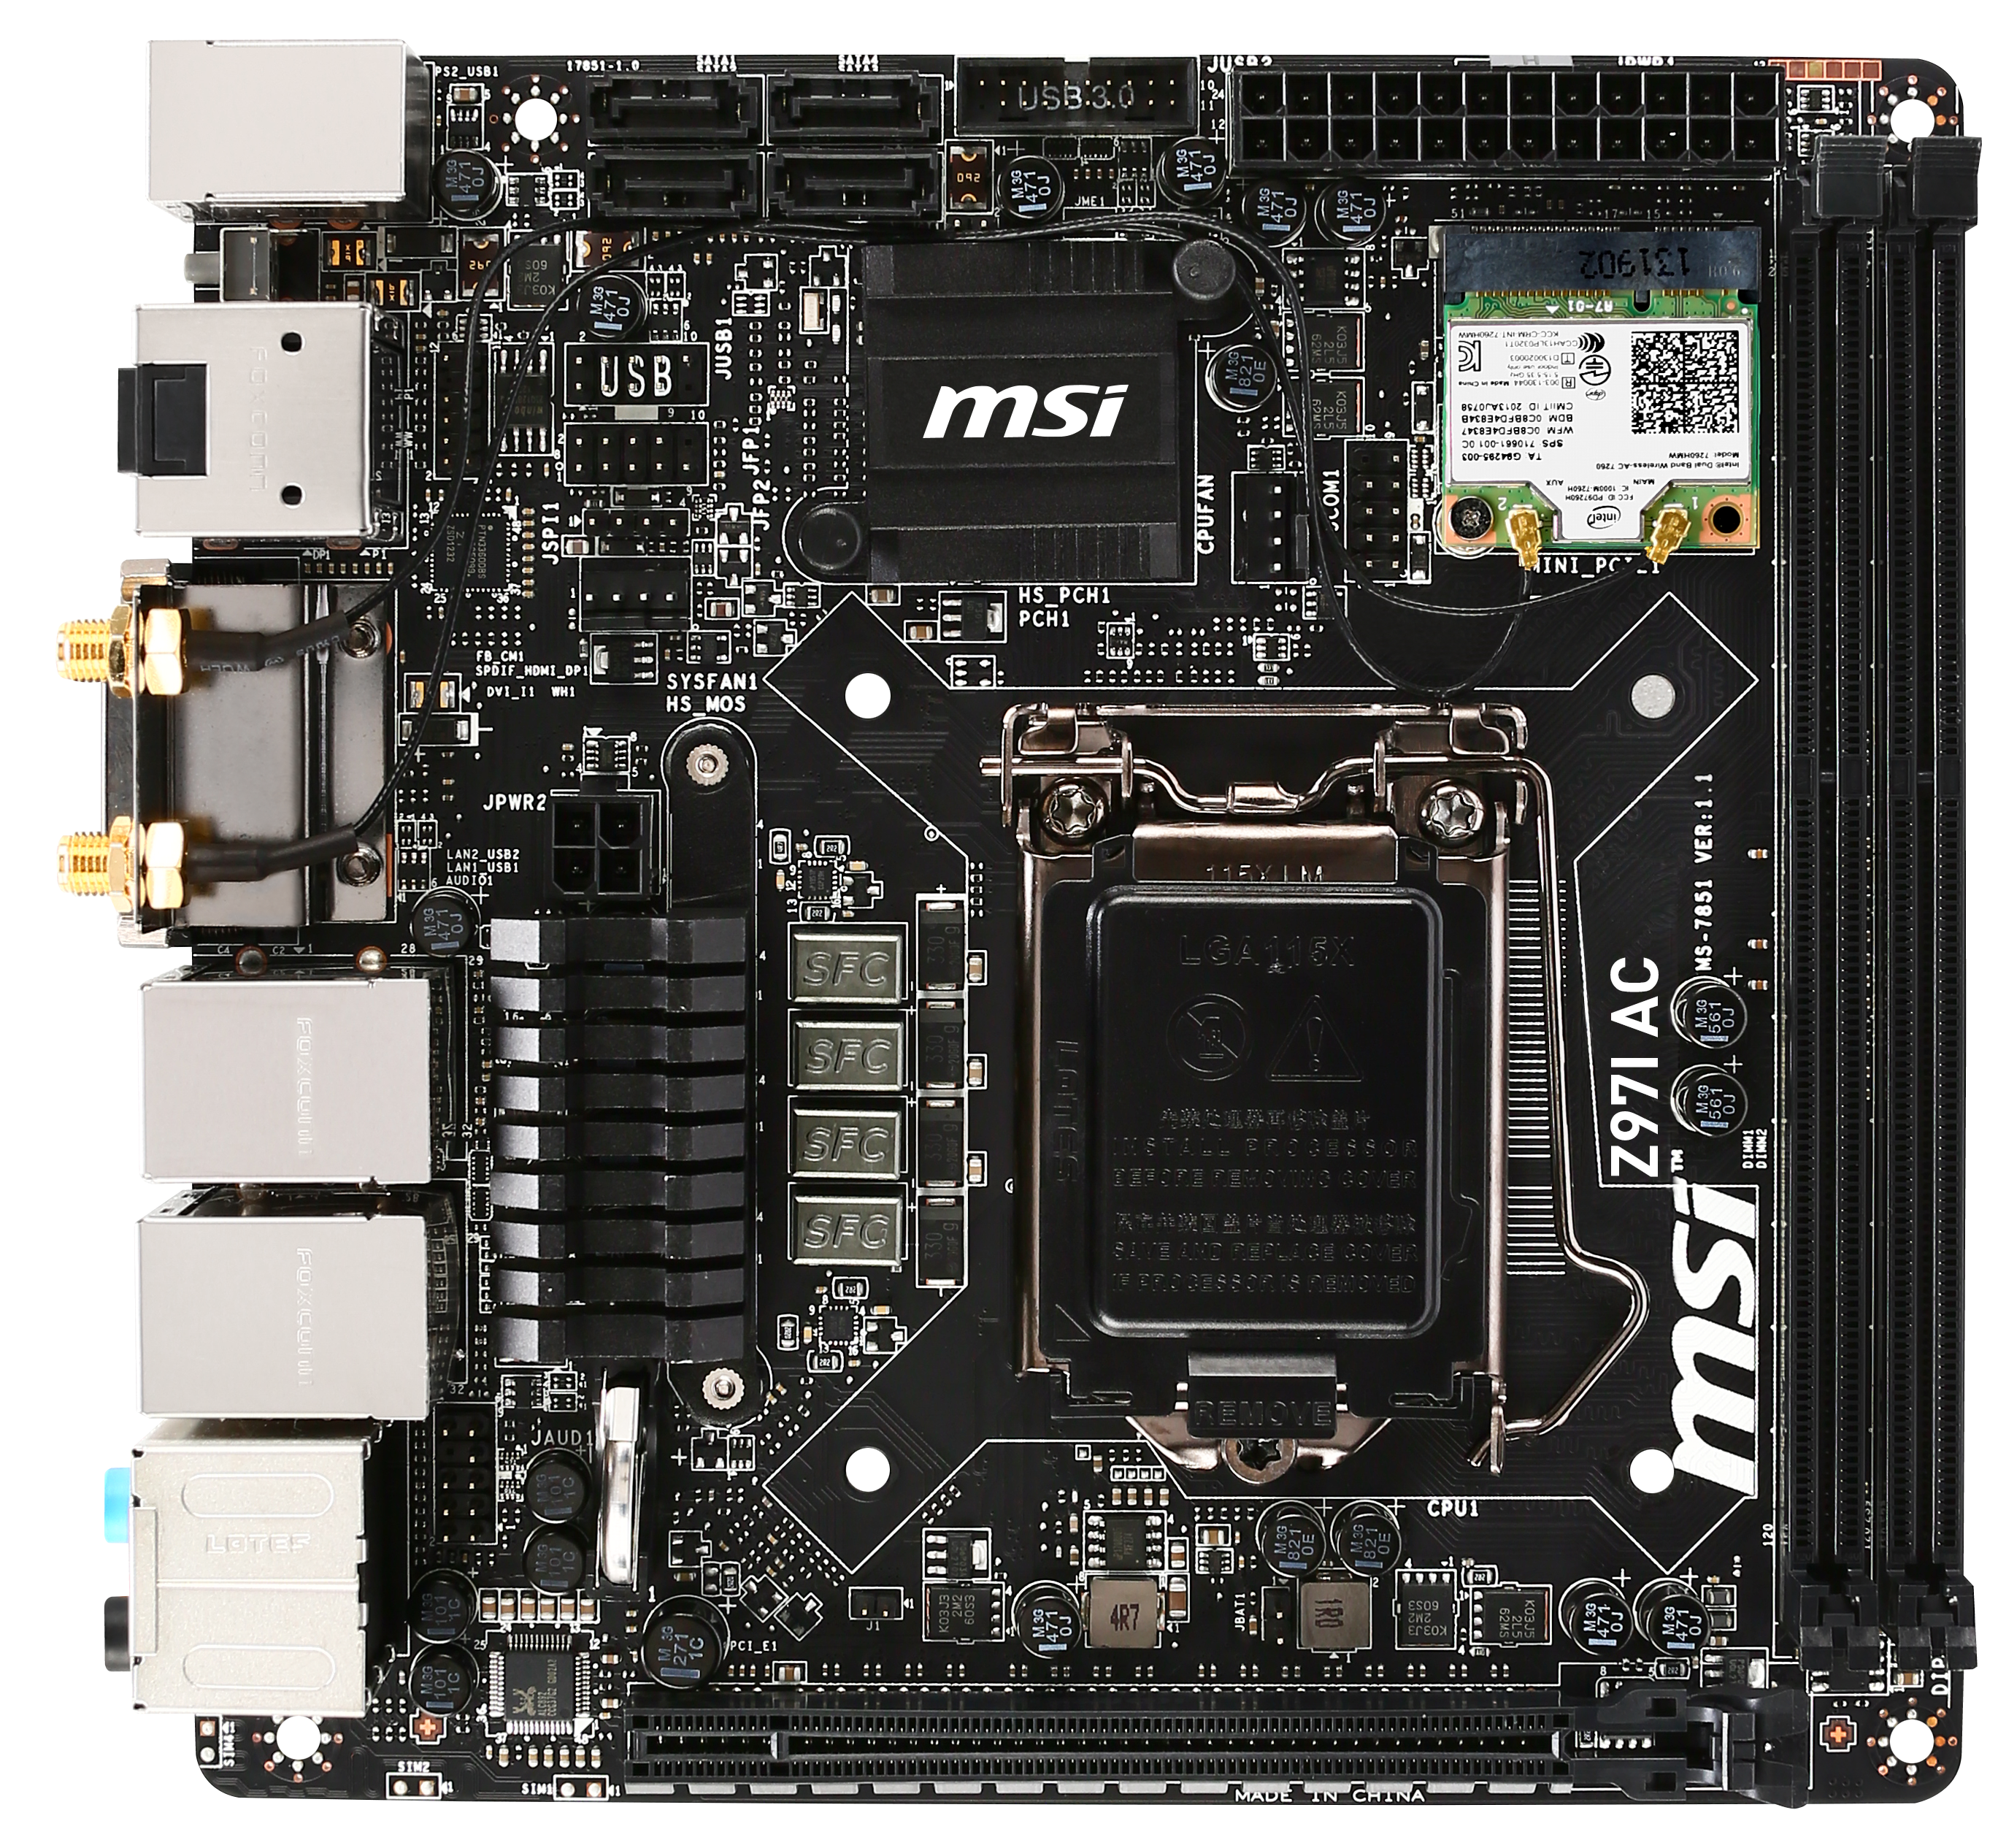 Motherboard Diagram In Detail Z97 Mini Itx Review At 140 Asrock Msi And Gigabyte Z97i Ac Visual Inspection